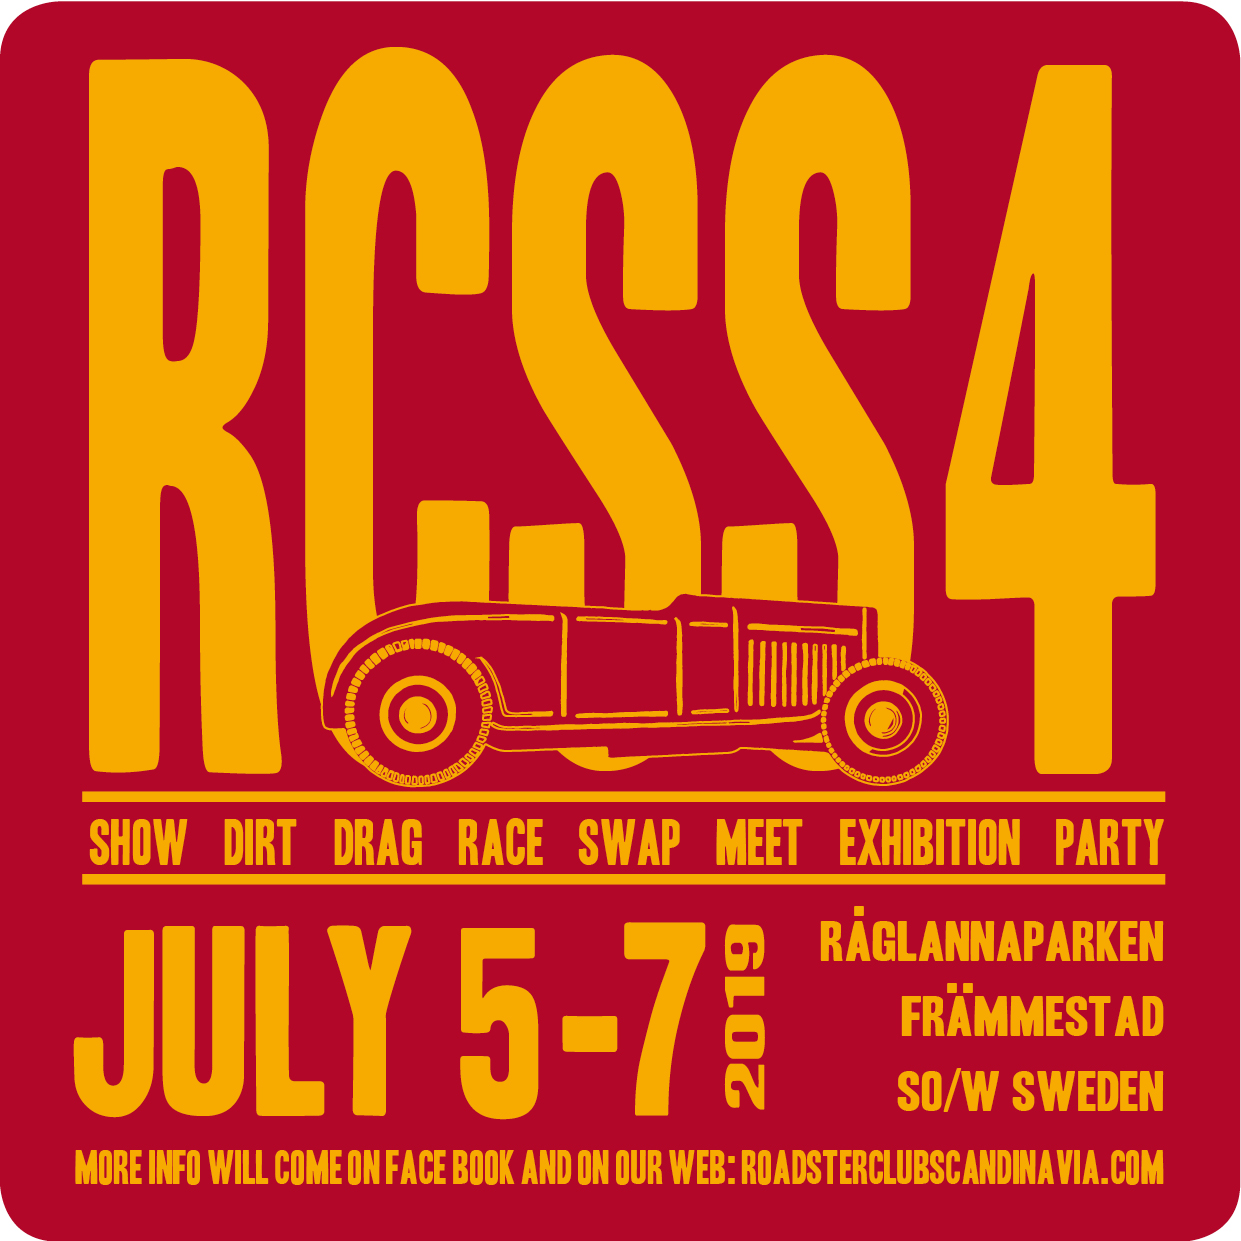 "Here's most of the info you'll need for our event RCSS4:     Same place as last time we had RCSS3: Råglannaparken SW Sweden.(Roadster Club Scandinavia Show #3)     This info Will follow in English further down.   RCSS4 (Roadster Club Scandinavia Show No 4)     5-7 Juli 2019 är det dags för vår show: RCSS4   För 2019 blir det inga direkta förändringar mer än att vi gör det lite bättre hela tiden, hoppas vi.  Precis som 2018 kan man campa redan från fredag om man vill. Det är dock inget officiellt party på fredag.      Det blir alltså :  Show, där vi utser:  -Scandinavias most beautiful roadster  -Scandinavias coolest roadster  -Scandinavias peoples choice.     Race     Det blir i stort samma dirt drag race på närmsta åkern ca 300 meter från festplatsen. Mer detaljerad info längre fram i texten.     Det blir prisutdelning för både vinnarna i vår show och race med fina priser och spons från flera bra företag. (mer info om vilka som kommer sponsa kommer senare, o.b.s. har du kontakter på företag som kan sponsa så hör av dig, kul om det blir mycket priser för vinnarna.     -Swap meet:     Alla kan ta med sig lite att sälja vid sin bil. Har man lite mer grejer, så tar man med ett bord. Vi tror och hoppas att Swapet blir lite större i år då vi bjudit in fler utställare. Alla utställare betalar inträde (200kr eller 150kr om man visar upp giltigt medlemskort)     -Exhibition  Där kommer även finnas några andra utställare som säljer eller visar annat hot rod relaterat. Det kommer dock inte finnas kläd och pryl/lifestyleförsäljare  Under dagen kommer det även förevisas annat hantverk: (mer info om detta kommer efter hand) Känner du något företag som du skulle tycka passa bra i denna genre så tipsa gärna. I år har vi även bjudit in tatuerare och frisör, mer info om detta kommer.     -RCS meeting point där man bl.a kan köpa handtryckta träff t-shirts, member t shirts, klistermärken, nyckelringar, aluminiumskyltar och andra RCS grejer.      Food:  Det kommer att finnas hamburgare, mackor, kaffe, godis och dricka. Vid racerbanan kommer det finnas dricka och någon typ av snacks.  Det kommer även serveras fin frukostbuffé på lördagen och söndagen, biljetter köper man på plats dagen innan man vill ha frukost.     Parken har en danspaviljong med stort tak utan väggar där man kan ta skydd om det kommer en skur. Det finns även andra tak där man kan sitta under och äta och fika.  För inramningens och stämningens skull finns det dessutom ett chokladhjul inne i parken.     Party:  Det kommer finnas livemusik och en lägereld att sitta runt på lördagskvällen (mer info om musik kommer senare).   Lördag kväll kommer det bli prisutdelning för både race och show.        Vi kommer, som sist, ha olika parkeringar för olika bilar:  Inne i parken:     Medlemsbilar och andra traditionella hotrods upp till 1937, billet proof och med diagonaldäck, inga rat rods. Traditionella gamla amerikanska bobbers är också välkomna.  Utanför parken blir det customs, andra hot rods och MC och camping (gräsplan),  Andra bilar får hitta plats längre bort från parken. Denna träff är framförallt för deltagare och inte åskådare, för de som faktiskt åker dessa bilar.     Tid: fredagen den 5 juli till söndagen den 7 juli.      Vi har som sist fått tillträde till parken och parkeringen redan på fredagen vilket betyder att man kan komma redan då. Ingen officiell aktivitet är planerat för fredagen. Alltså får man sköta sitt själv då.      Entré 200kr  Medlem med giltigt medlemskort 150kr     Packlista:  -Din hot rod  -Giltigt medlemskort (om du vill komma in billigare)  -Hot roddelar till swapet  -Periodkorekta kläder (50tal och nedåt) är frivilligt förstås men kul. Pris till bäst klädda Tjej/Kille.  -Stark dryck för den som vill (finns inte att köpa på plats, dock finns ett systembolag i Nossebro, några km från parken  -Tält och övrig campingutrustning för de som vill campa precis utanför parken (annars finns camping, vandrarhem och hotell i Nossebro)  -Ta med regnkläder, för då blir det inget regn!  -Gott partyhumör!           Följ oss på Facebook eller på www.roadsterclubscandinavia.com för löpande ny info.  Vi lägger ut nyheter efter hand. Gå gärna in på Facebook och meddela att du kommer så blir det enklare att planera mat o.dyl.            Mer detaljer om racet.     Det handlar om ett kort Dirt drag race 1/16 mile (ca 100m).   Racet kommer att vara bara 300 m från festplatsen på en åker bakom en lada på andra sidan vägen. För RCSS4 kommer bromssträckan vara längre och taxibanan ligga parallellt med banan.  Åkern kommer vara preppad, plogad, ringvältad, bultad och lite grusad i starten.  Vi kommer att ha tre olika klasser, som sist:  - Four banger  - 6-8 cyl flat head  - Toppventil     Det som gäller annars är:  - Bara traditionella hotrods upp till 1937  - Bara diagonalhjul är tillåtna  - Hjälm, heltäckande klädsel och handskar är ett krav.  - Brandsläckare snabbt tillgänglig i varje bil.  - Det kommer vara en security check på varje bil.  - Starten kommer att ske två och två bredvid varandra och flaggas av.  - Man kommer få skriva på att detta bara är ett veteranrally som inte är en tävling.   - Alla i race teamet måste vara periodkorrekt klädda (30-40s style) även funktionärer och fotografer.  - Man kommer att få göra föranmälan och förbetalning (300skr) och bifoga info om bilen och även bilder.  -Anmälan sker på hemsidan. Fyll i formuläret så får du bekräftelse om du blivit antagen och betalnings info.  Detta formulär kommer att annonseras när det kommer upp på hemsidan.  -Obs det är ett begränsat antal platser för racet! Först till kvarn!     Varmt välkomna.  RCS Crew  ----------------------------------------------------------------------------------------------------------------------------------------------------------        ENGLISH VERSION:     RCSS4 (Roadster Club Scandinavia Show #4)     5-7 July 2019 is the time for our show: RCSS4  For 2019 we will do pretty much as last time but a little bit better, we hope.  It will be as follows:     Show, where we choose:     -Scandinavia's most beautiful roadster  -Scandinavia's coolest roadster  -Scandinavia's peoples choice     Race     Dirt drag race on the nearest field about 300 meters from the venue. More detailed information later in the text.     Saturday night there will be awards ceremony for both the winners of our show and the race with great prizes and sponsorships from several good companies. (more info about who will sponsor will come later, if you have more contacts on companies that can sponsor please let us know, it's nice if there are a lot of prizes for the winners)     -Swap meet:     Everyone can bring a little to sell from their car. If you have any more stuff, then you bring your own table.  No flea or antique, only hot rod related.     -Exhibition  There will also be some other exhibitors selling or showing other hot rod related. However, there will be no clothes and gadgets / lifestyle sellers  During the day there will also be other crafts: (more info about this coming in hand) Do you know any company that you would like to fit well in this genre, please feel free to contact us. For this year we have invited a tatto artist and a barber.     -RCS meeting point where you can buy hand-printed hit t-shirts, member shirts, stickers, key rings alu plaquets and other RCS stuff.     Food:  There will be hamburger, sandwiches, coffee, candy and drink. Hopefully we'll have sometin next to the race track as well.  A breakfast buffet is also available on Friday and Sunday, you buy a ticket the day before you want breakfast.     The park has a dance pavilion with a large roof without walls where you can take shelter if the sky opens up There are also other roofs where you can sit and eat and ""fika"".  For the sake of the atmosphere there will also be a chocolate wheel inside the park.     Party:  There will be live music and a camp fire lit on Saturday night.     We will, as last time, have different parking spaces for different cars:  Inside the park:  Members cars and other traditional hotrods up to 1937, billet proof and with bias ply (diagonal) tires, no rat rods. Also old traditional american bobbers are welcome into the park.  Outside the park there are customs, other hot rods and MC's and camping (on the gras),  Other cars may find a place further away from the park. This show is primarily not for spectators but for participants, for those who actually drive these cars.     Time: Friday night the5th of July to Sunday 7th of July.   Like last time we have access to the park and parking all ready Friday . No official action going on Friday, you're on your own.      Entrance 200kr  Member with valid membership card 150kr     Packing list:     -Your hot rod  -Full membership card (if you want to enter cheaper)  -Hot rod parts for the swap.  -Period-correct clothing (50th and down) is voluntarily of course but fun. Price for best dressed girl / boy.  -Alcohol drinks for the one who wants (cannot be bought on site, however, there is a ""Systembolget"", (liquor store), in Nossebro, a few kilometers from the park  -Tent and other camping equipment for those who want to camp just outside the park (camping, hostel and hotels you can find in the nearby village Nossebro)  -Bring rainwear, because then there will be no rain!  -Good party mood!           Follow us on Facebook or at www.roadsterclubscandinavia.com for ongoing news.  We publish news by hand. Feel free to post on Facebook and announce that you will make it easier to plan food etc        More details about the race.  It's about a short Dirt drag race 1/16 mile (about 100m).  The race will be only 300m from the party site on a field behind a barn on the other side of the road.  The track will be prepared, plowed, ring-rolled, bumped and a little gravelled at the start. This year the track will have a bit longer breaking distance and a taxiline parallell to the track.  The classes will be the same this year:  - Four banger  - 6-8 cyl flat head  - Overhead valve.     What else:  - Only traditional hot rods up to 1937  - Only bias ply tires are allowed  - Helmet, comprehensive clothing and gloves  - Fire extinguisher quickly available in every car.  - There will be a security check on each car.  - The start will be two and two next to each other and flagged off.  Everybody will sign to that this is only a veteran rally, not a competition.  - Everybody in the race team must be periodically dressed (30-40s style) even functionaries and photographers.  - You will have to pre book and prepay (300kr) and attach information about the car and also pictures.  -Go in to our web site to fill in the race application, after that you'll get a mail from us with info about payment and if you are approved for the race.  The form will be announced when its up on the web.     -Note, there is a limited assumption for the race! First come!     Welcome.  RCS crew.Keep an eye on Facebook and here on the web."